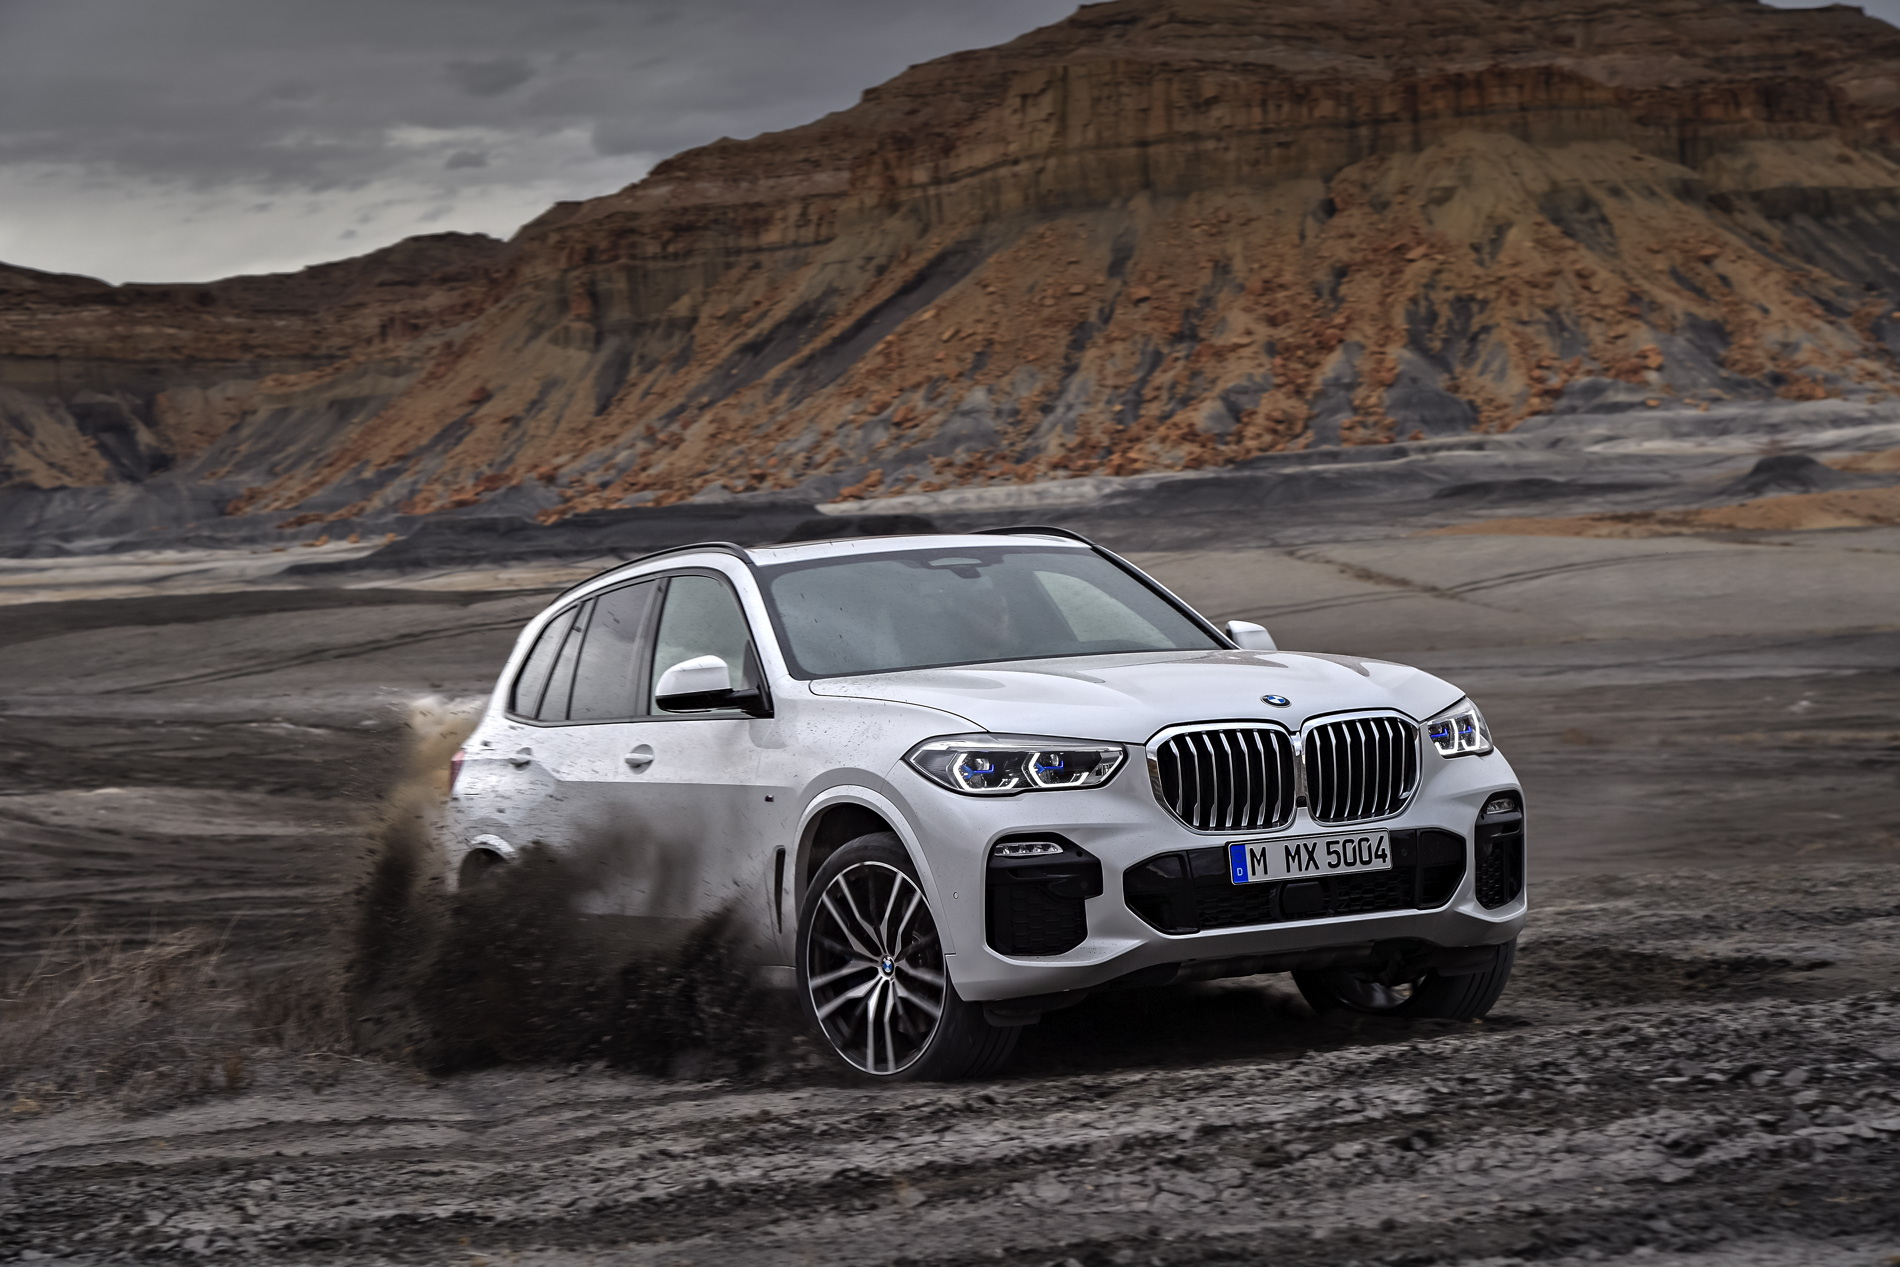 First Videos Of The New Bmw G05 X5